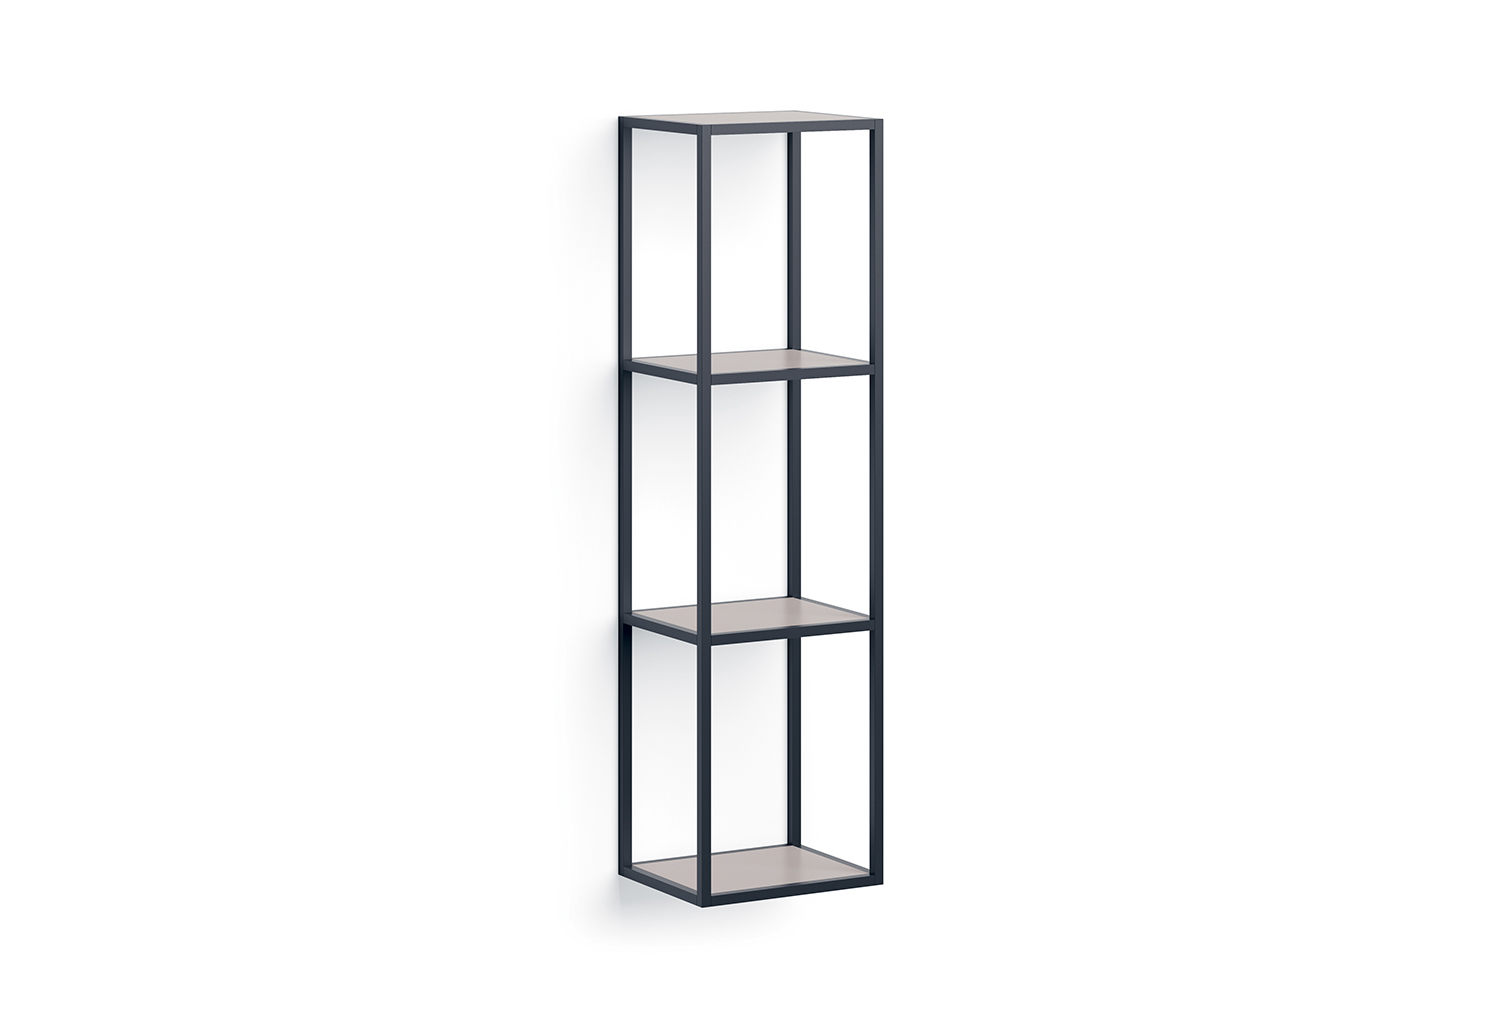 Metal frame shelving with 4 shelves